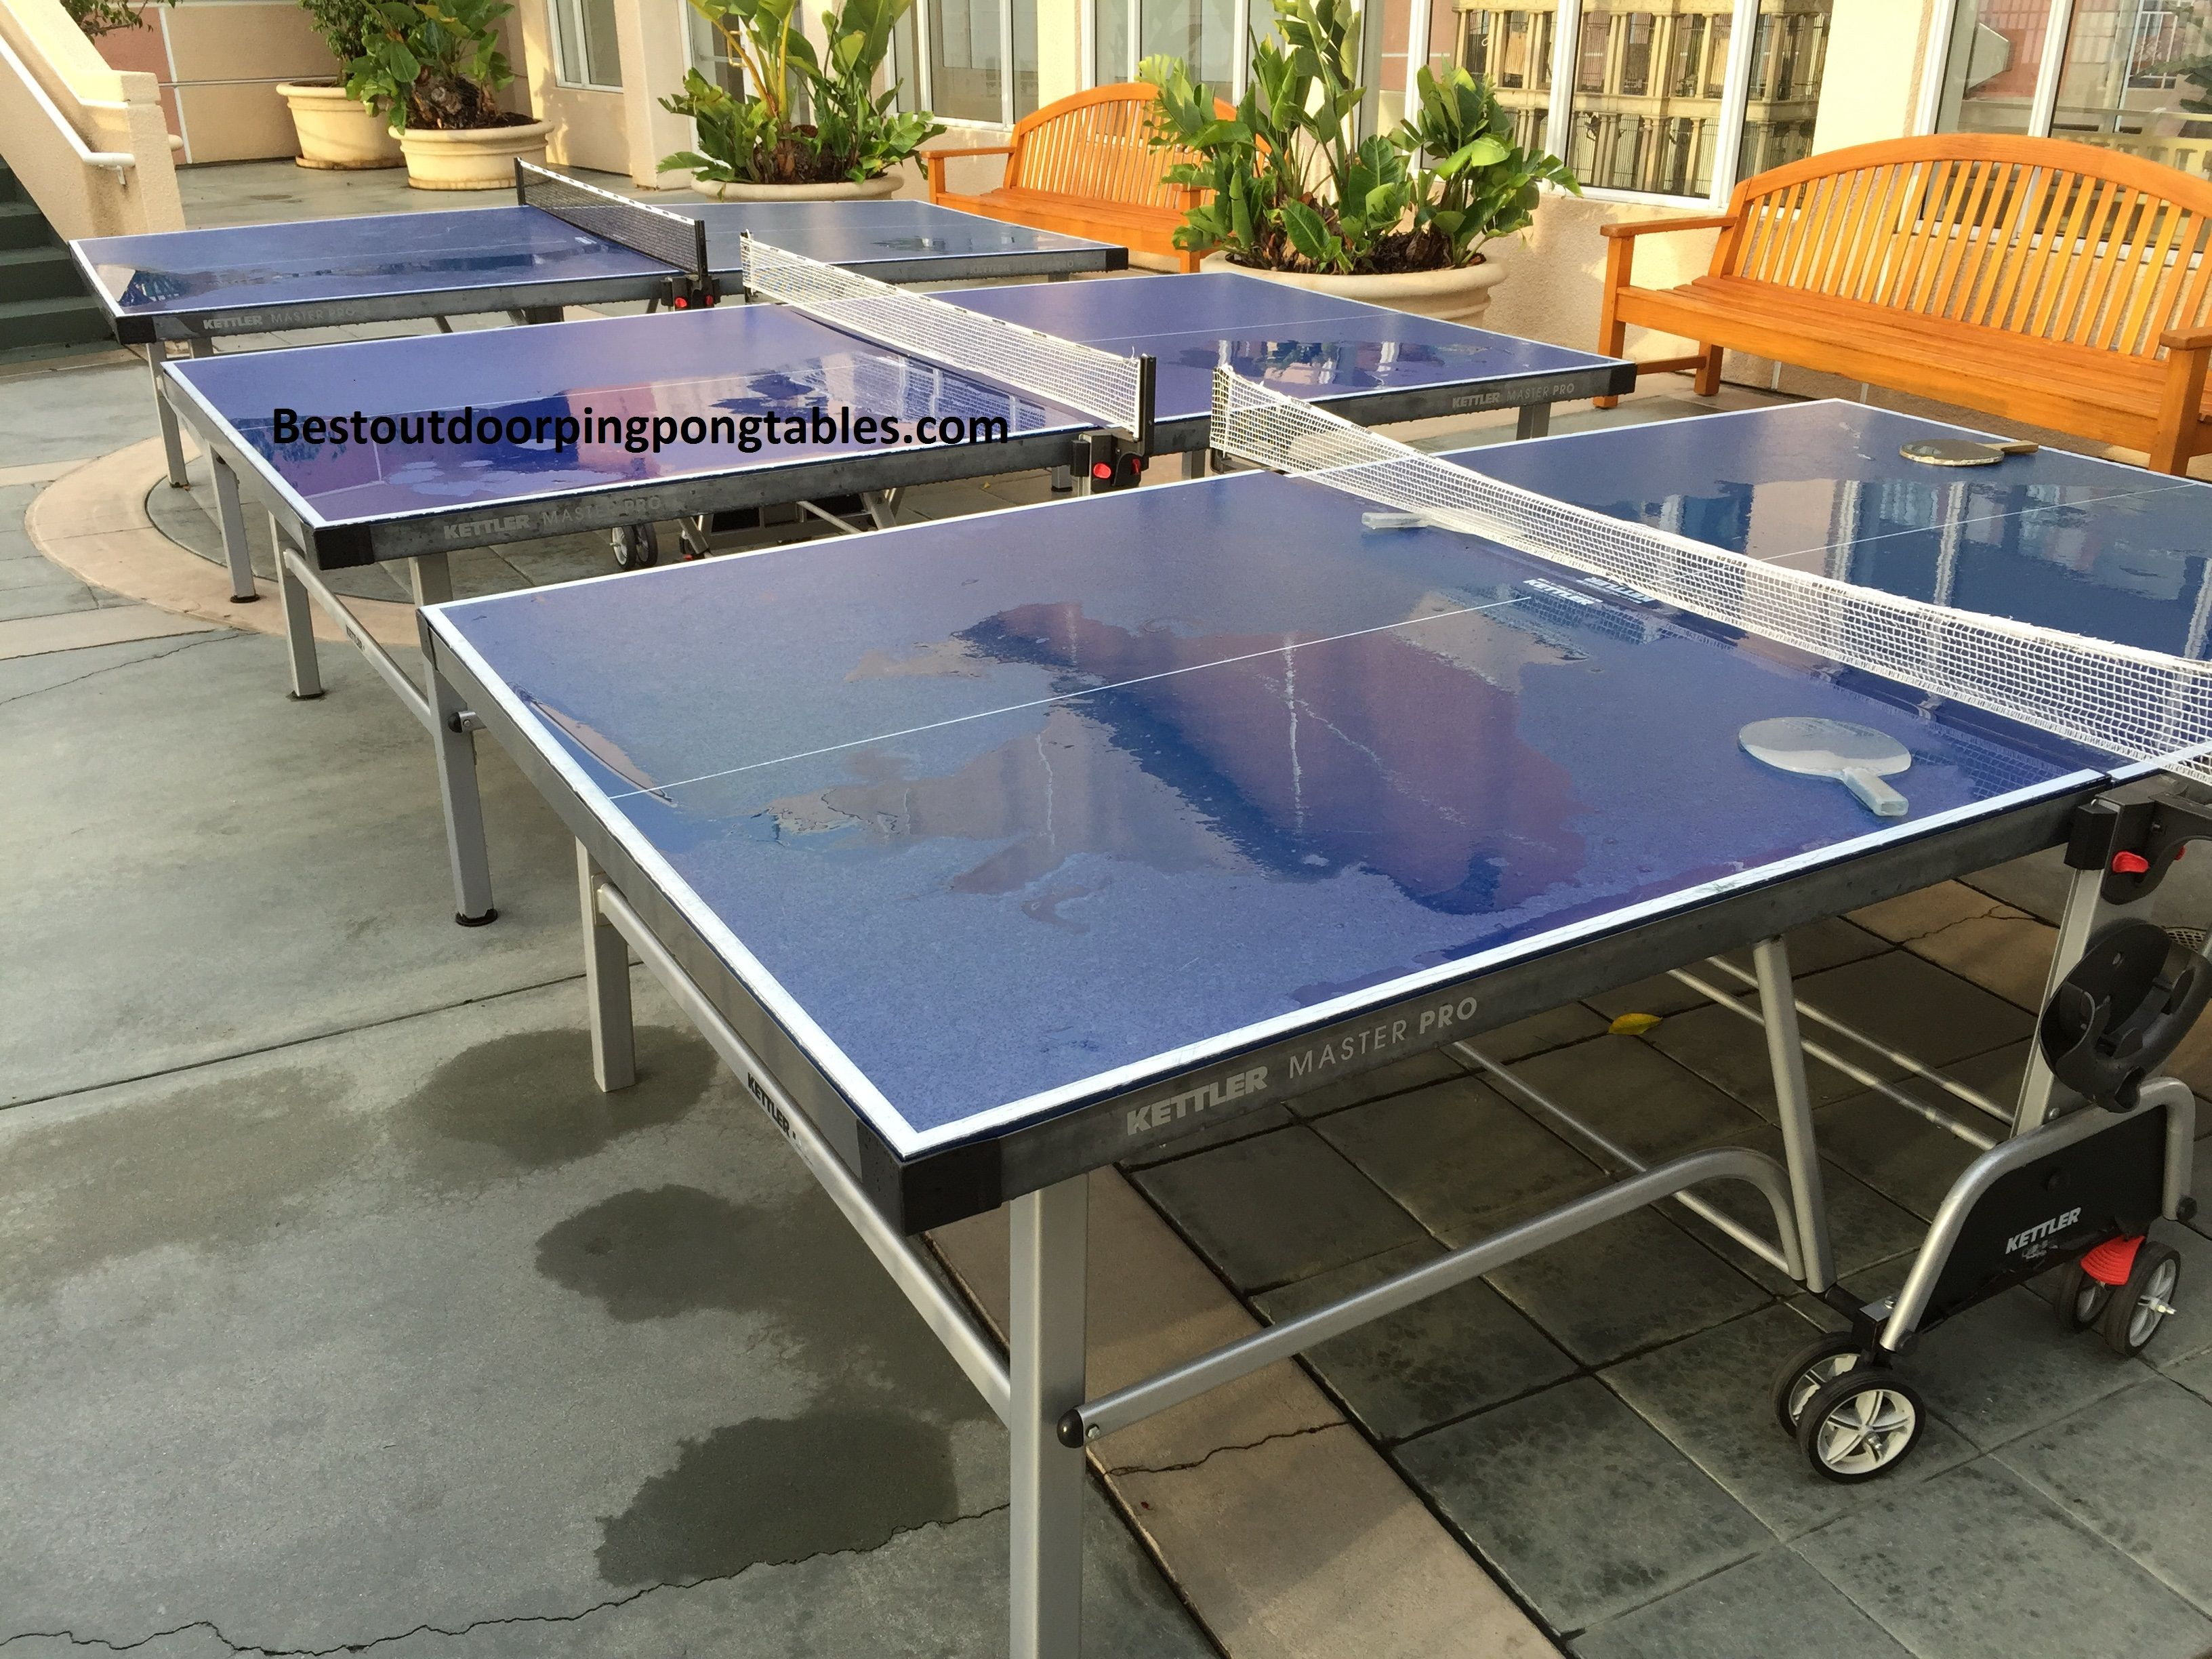 kettler master pro outdoor kettler master pro outdoor ping pong rh pinterest com kettler outdoor ping pong table parts kettler outdoor ping pong table assembly instructions